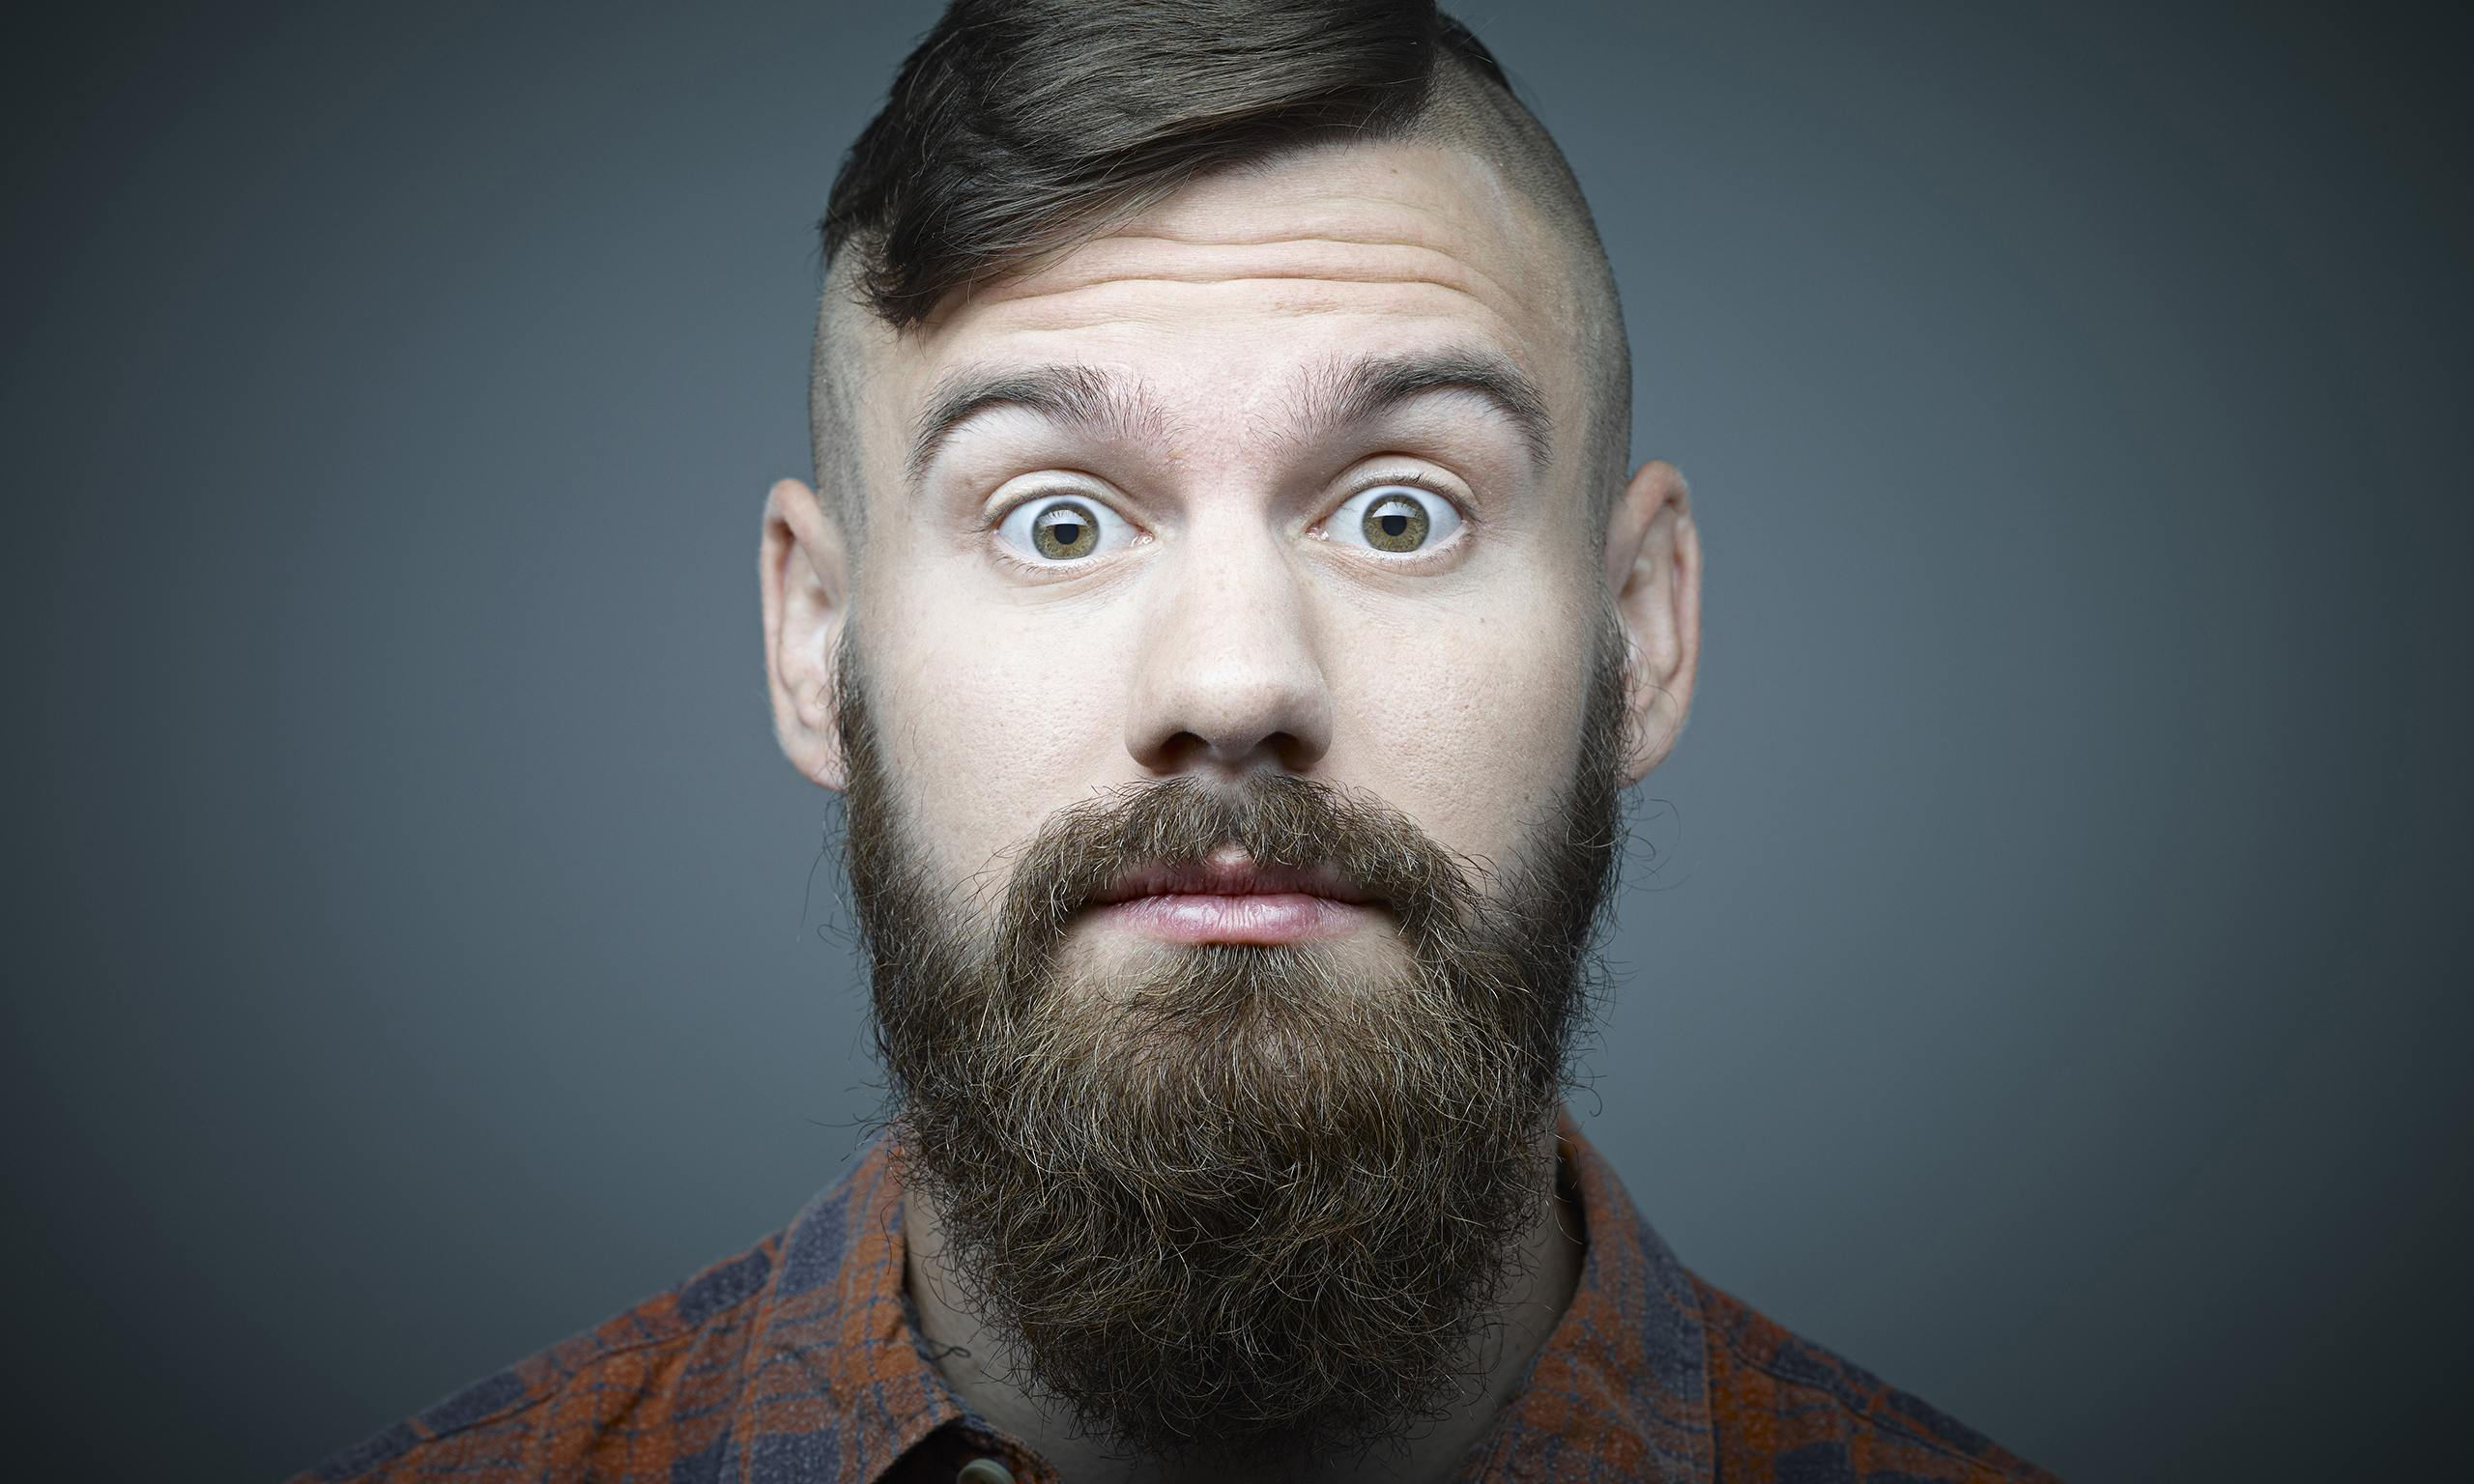 Popular Goatee Beard Styles for Different Face Types